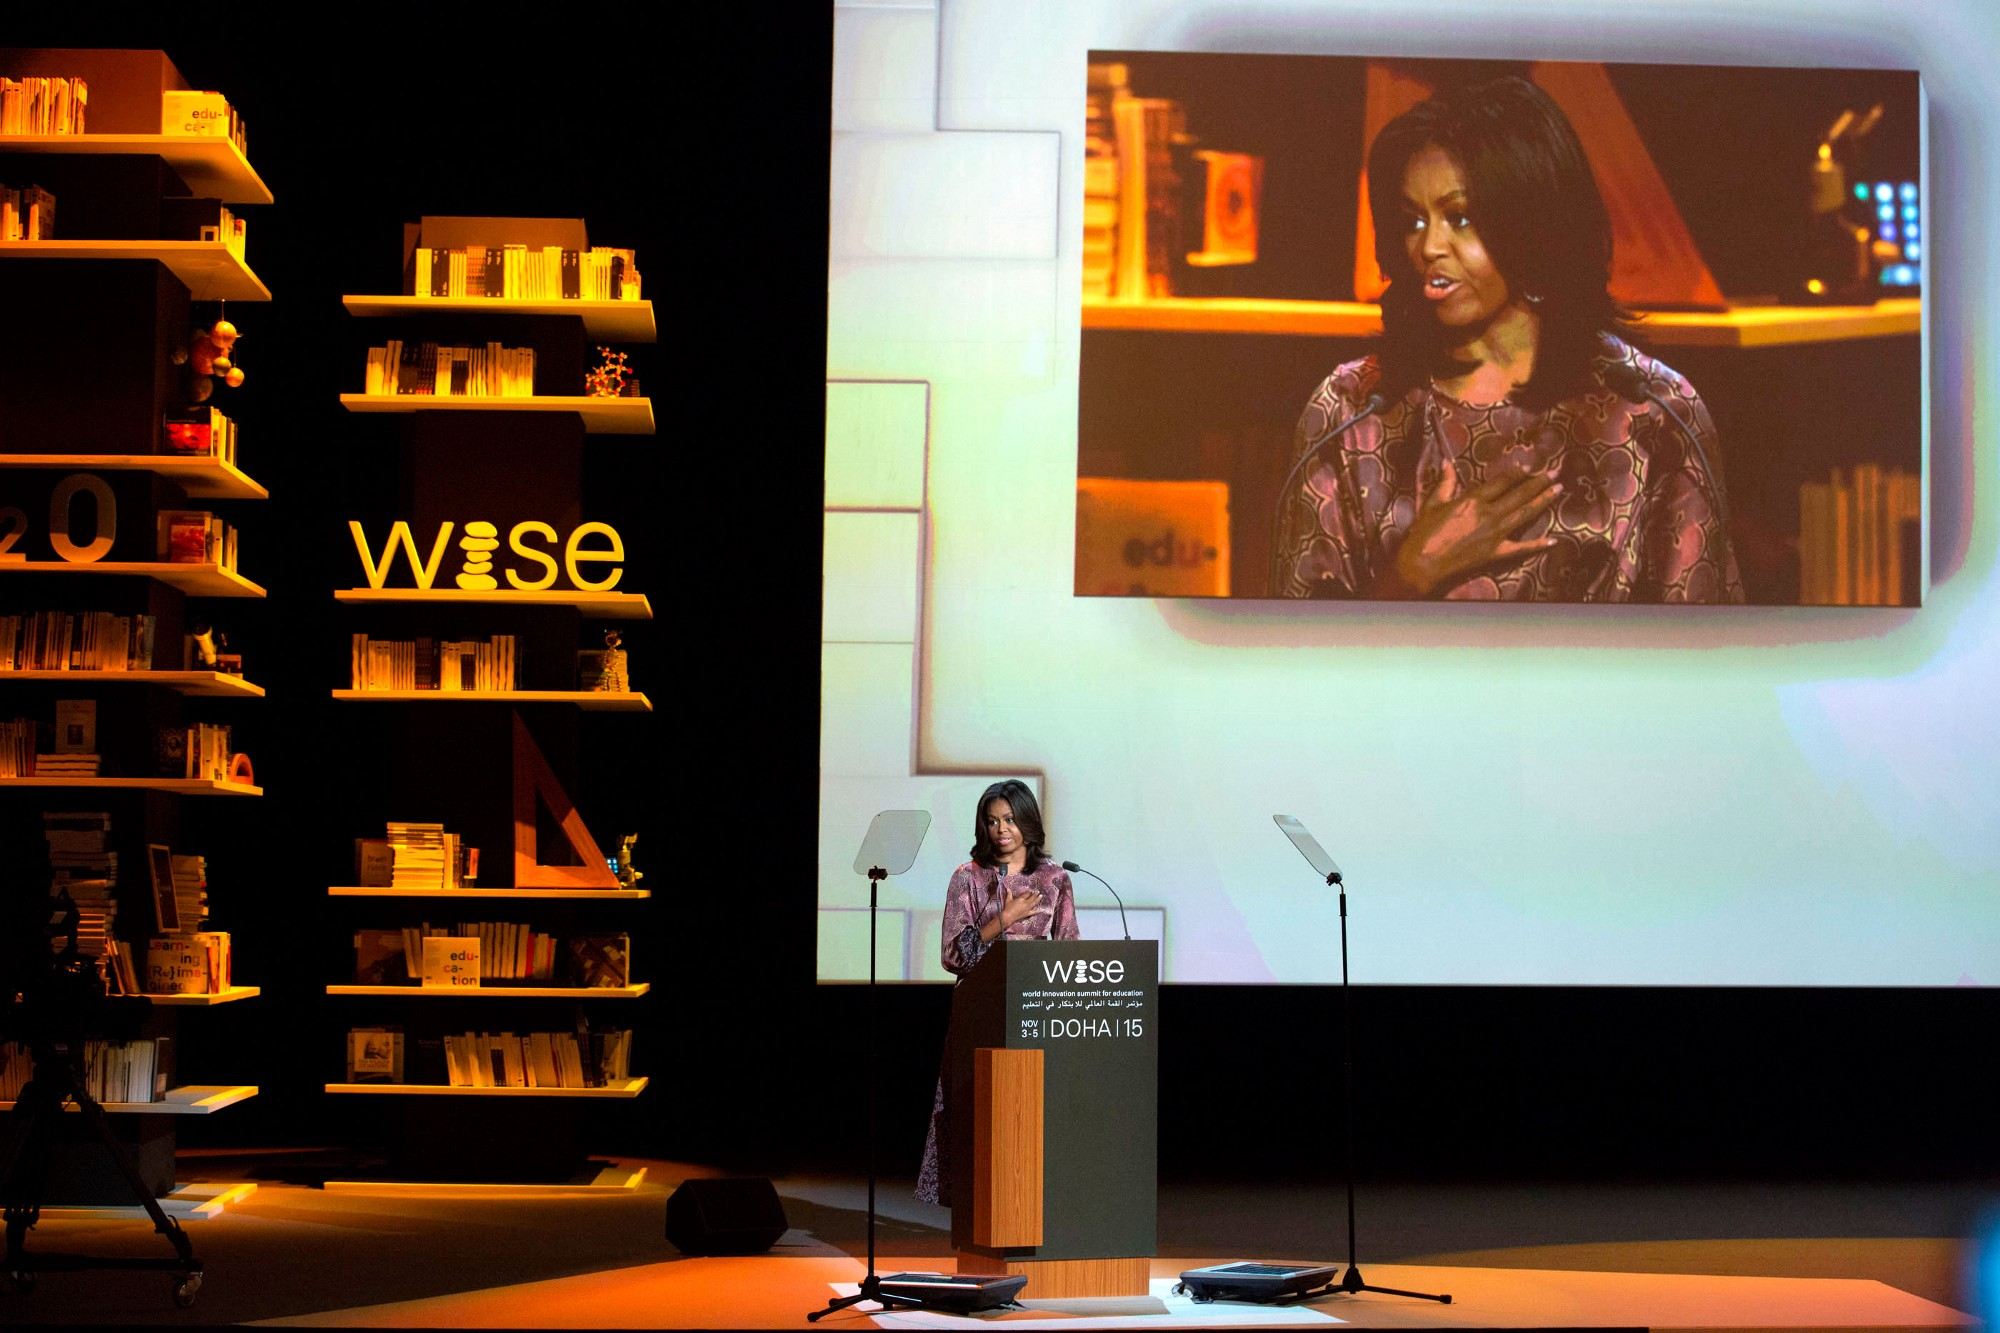 Michelle Obama speaking on stage at the World Innovation Summit for Education